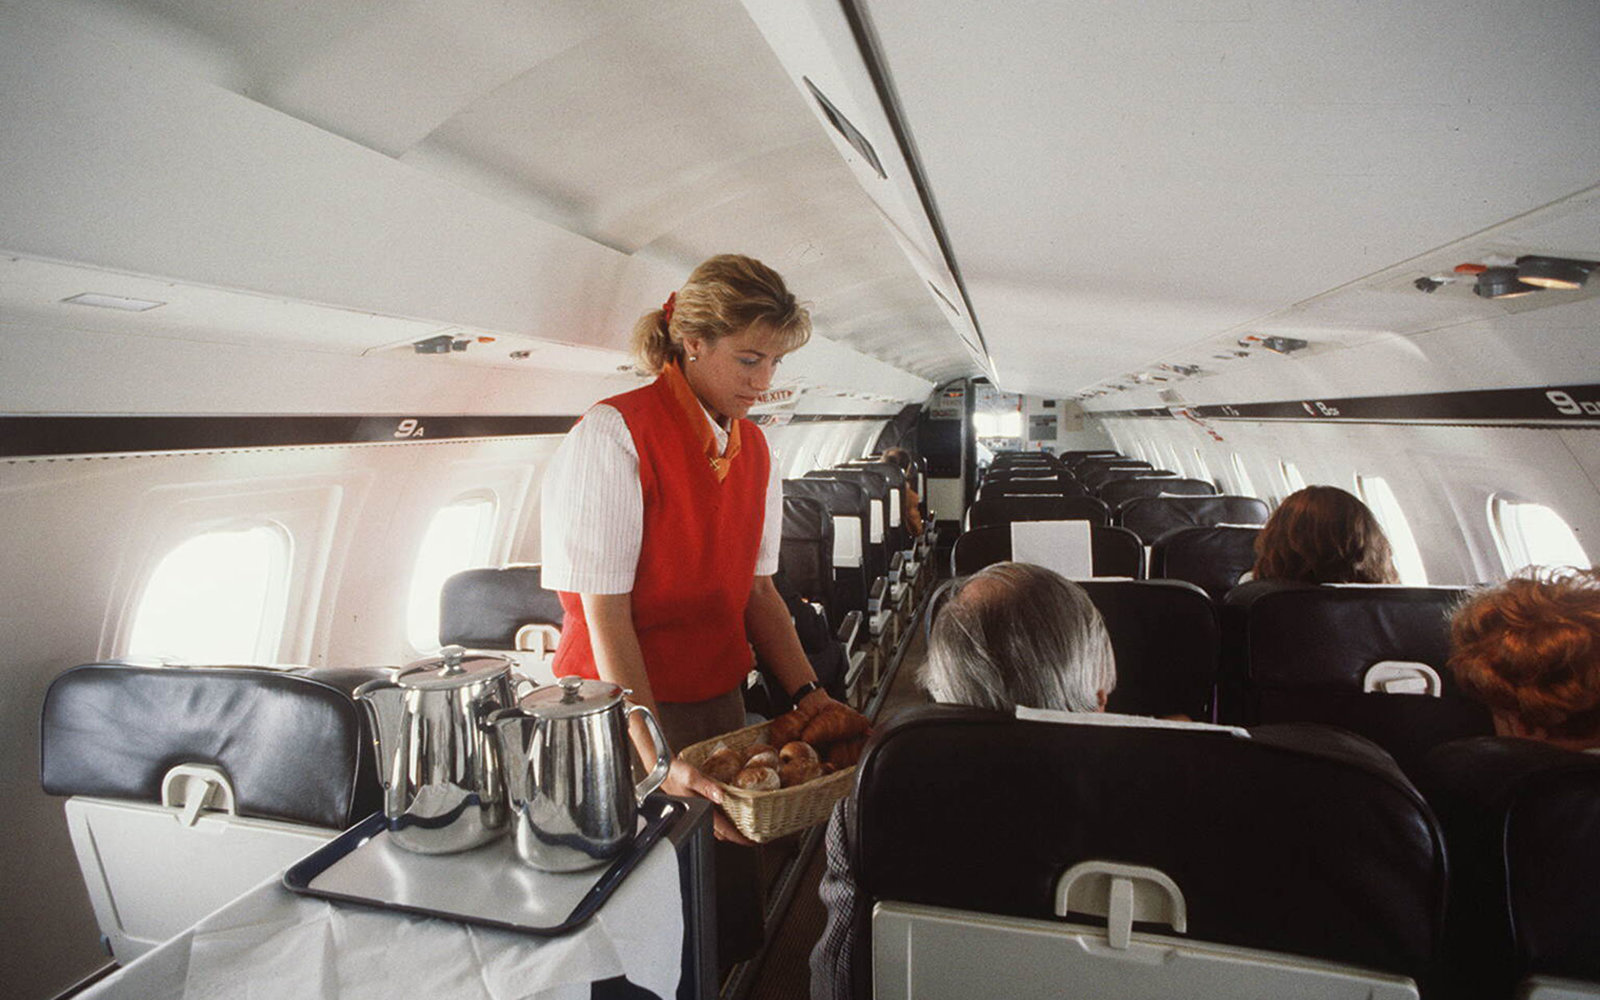 (GERMANY OUT) Stewardess serviert in einemRegionalflugzeug der `Tempelhof Airways'aus Berlin- Oktober 1990 (Photo by Rieth/ullstein bild via Getty Images)